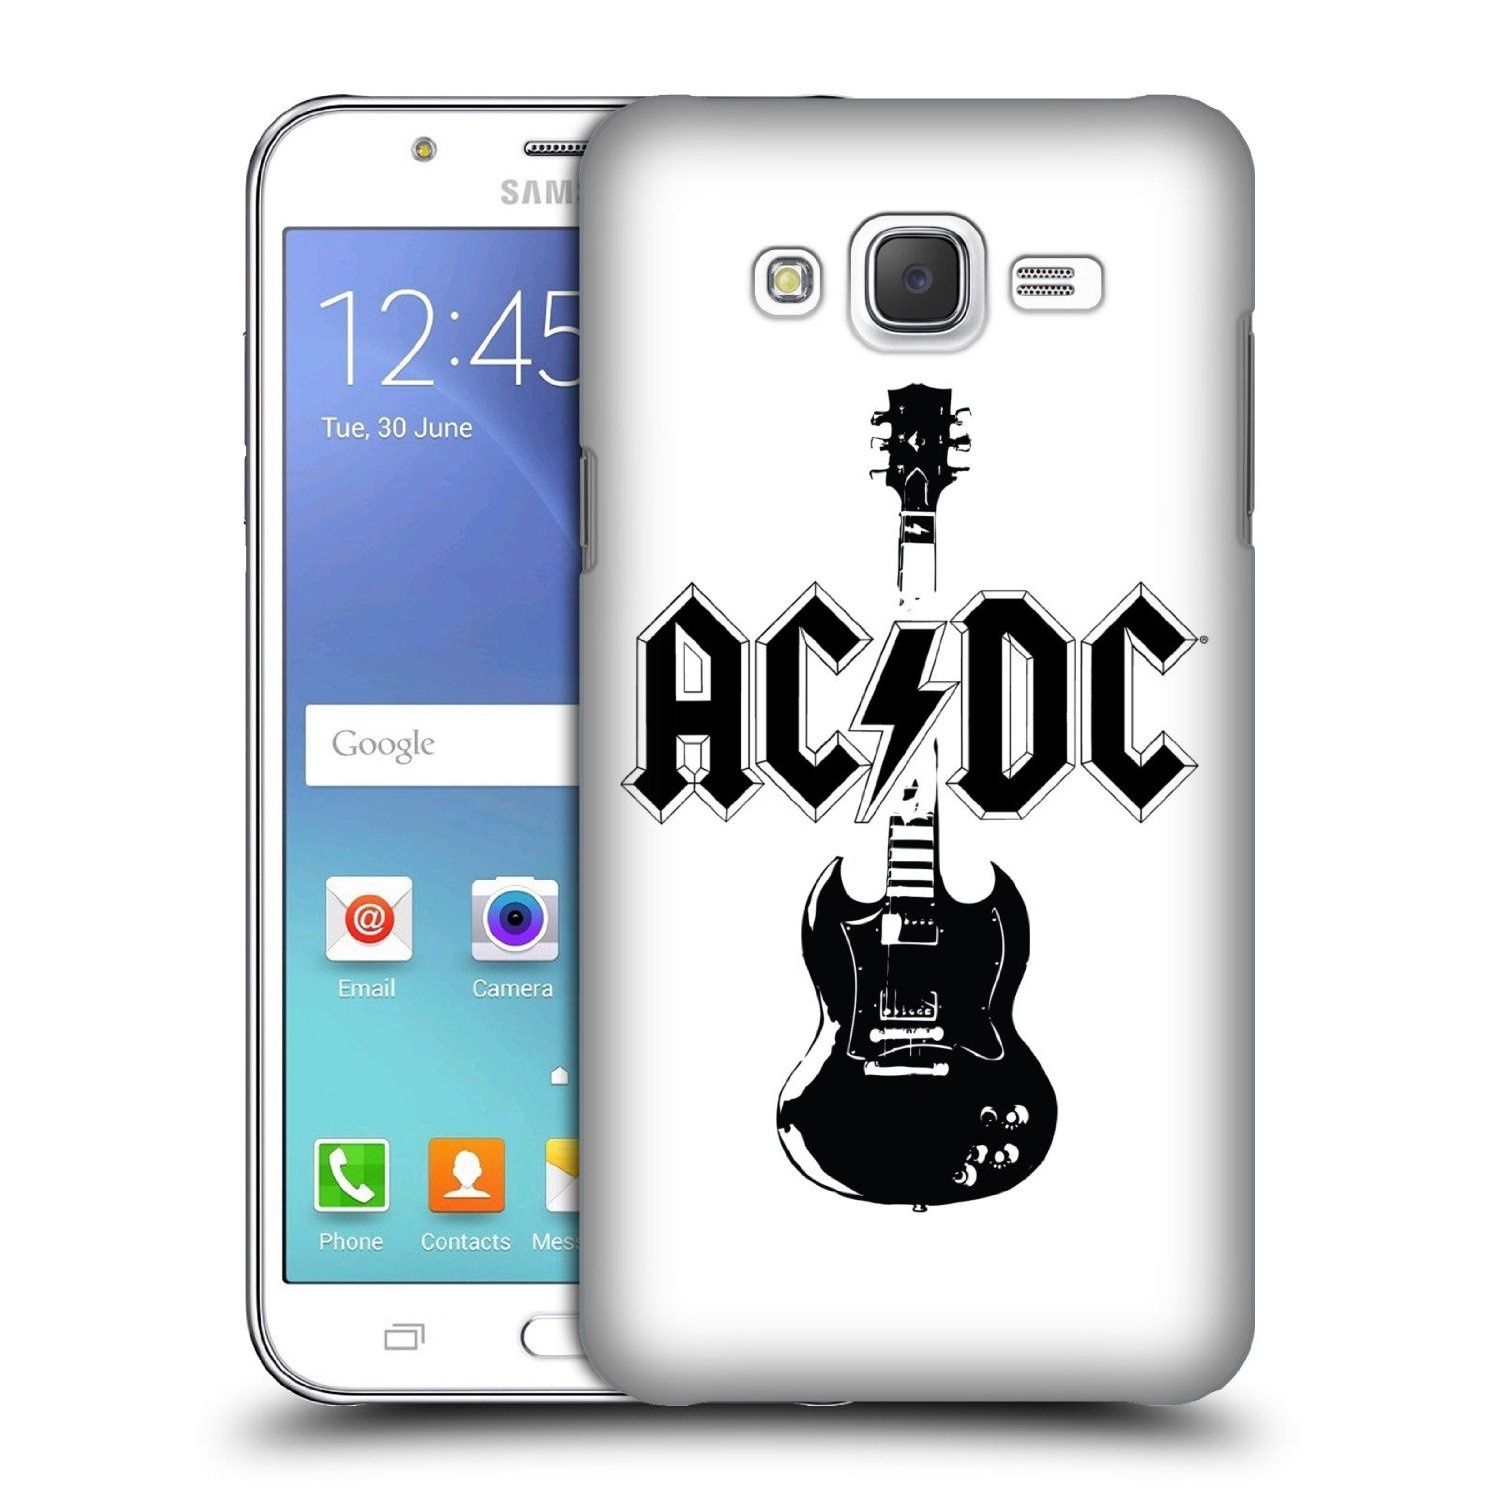 accessoire mobile coque smartphone acdc pour samsung galaxy j5 j500 le blog bon plan. Black Bedroom Furniture Sets. Home Design Ideas